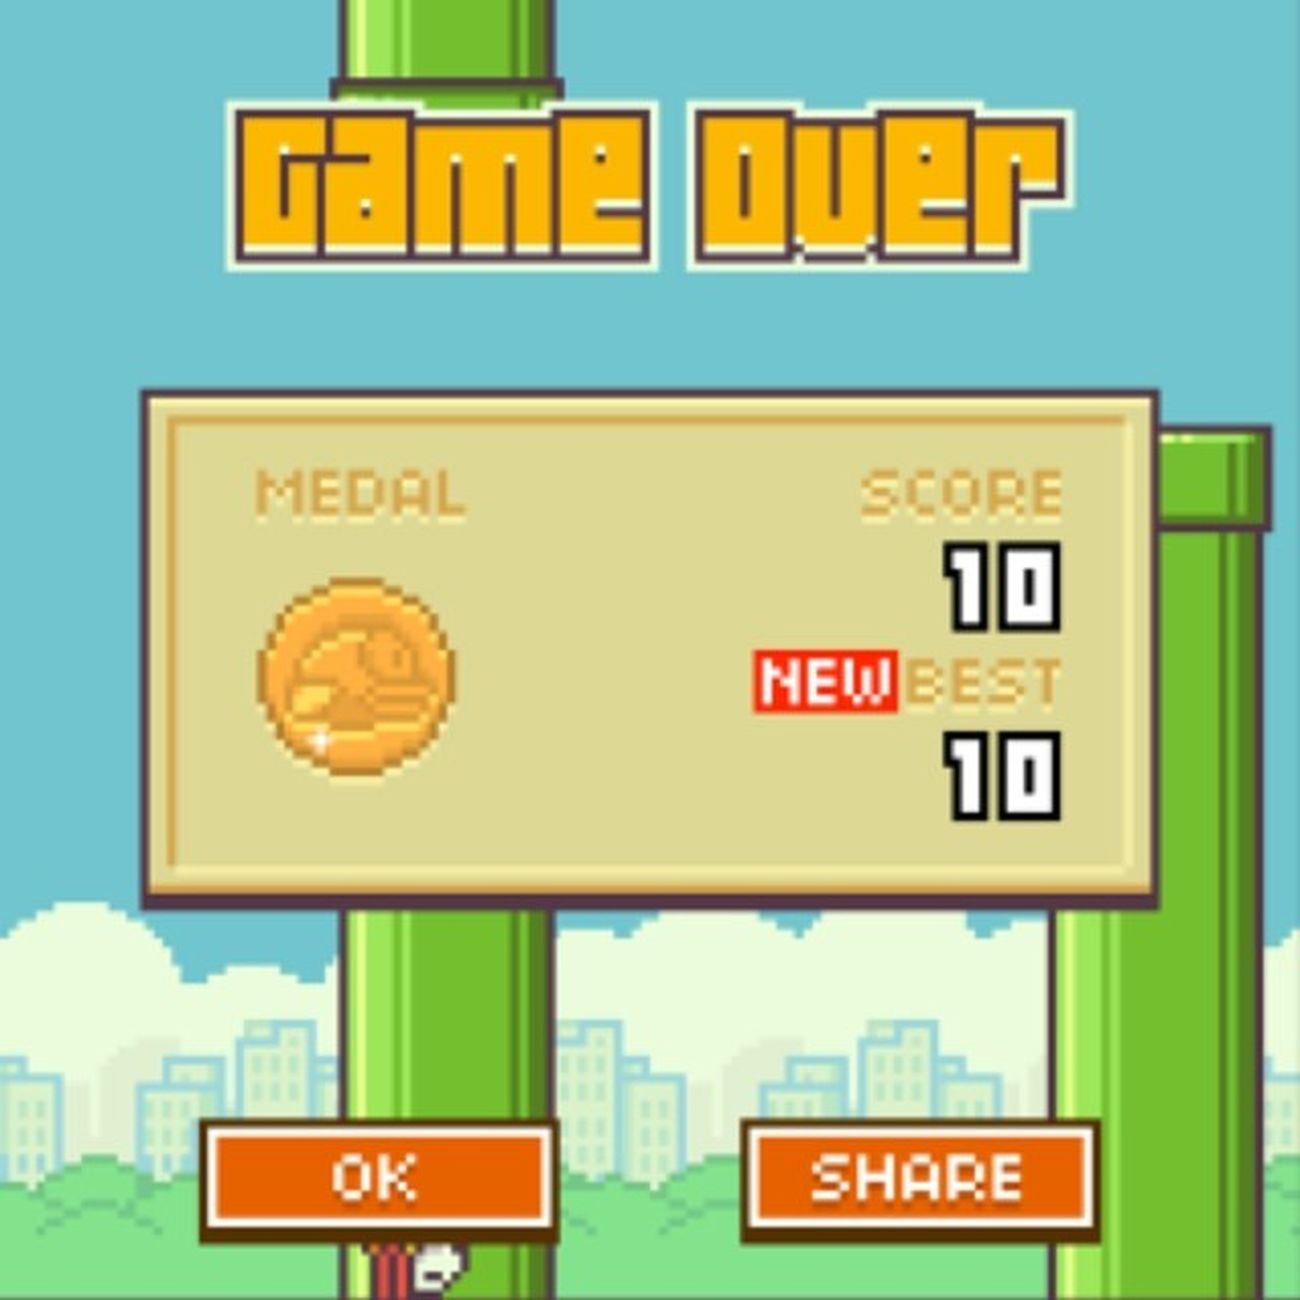 FlappyBirds Bestscoreever Buzzing Videogames iphon4s